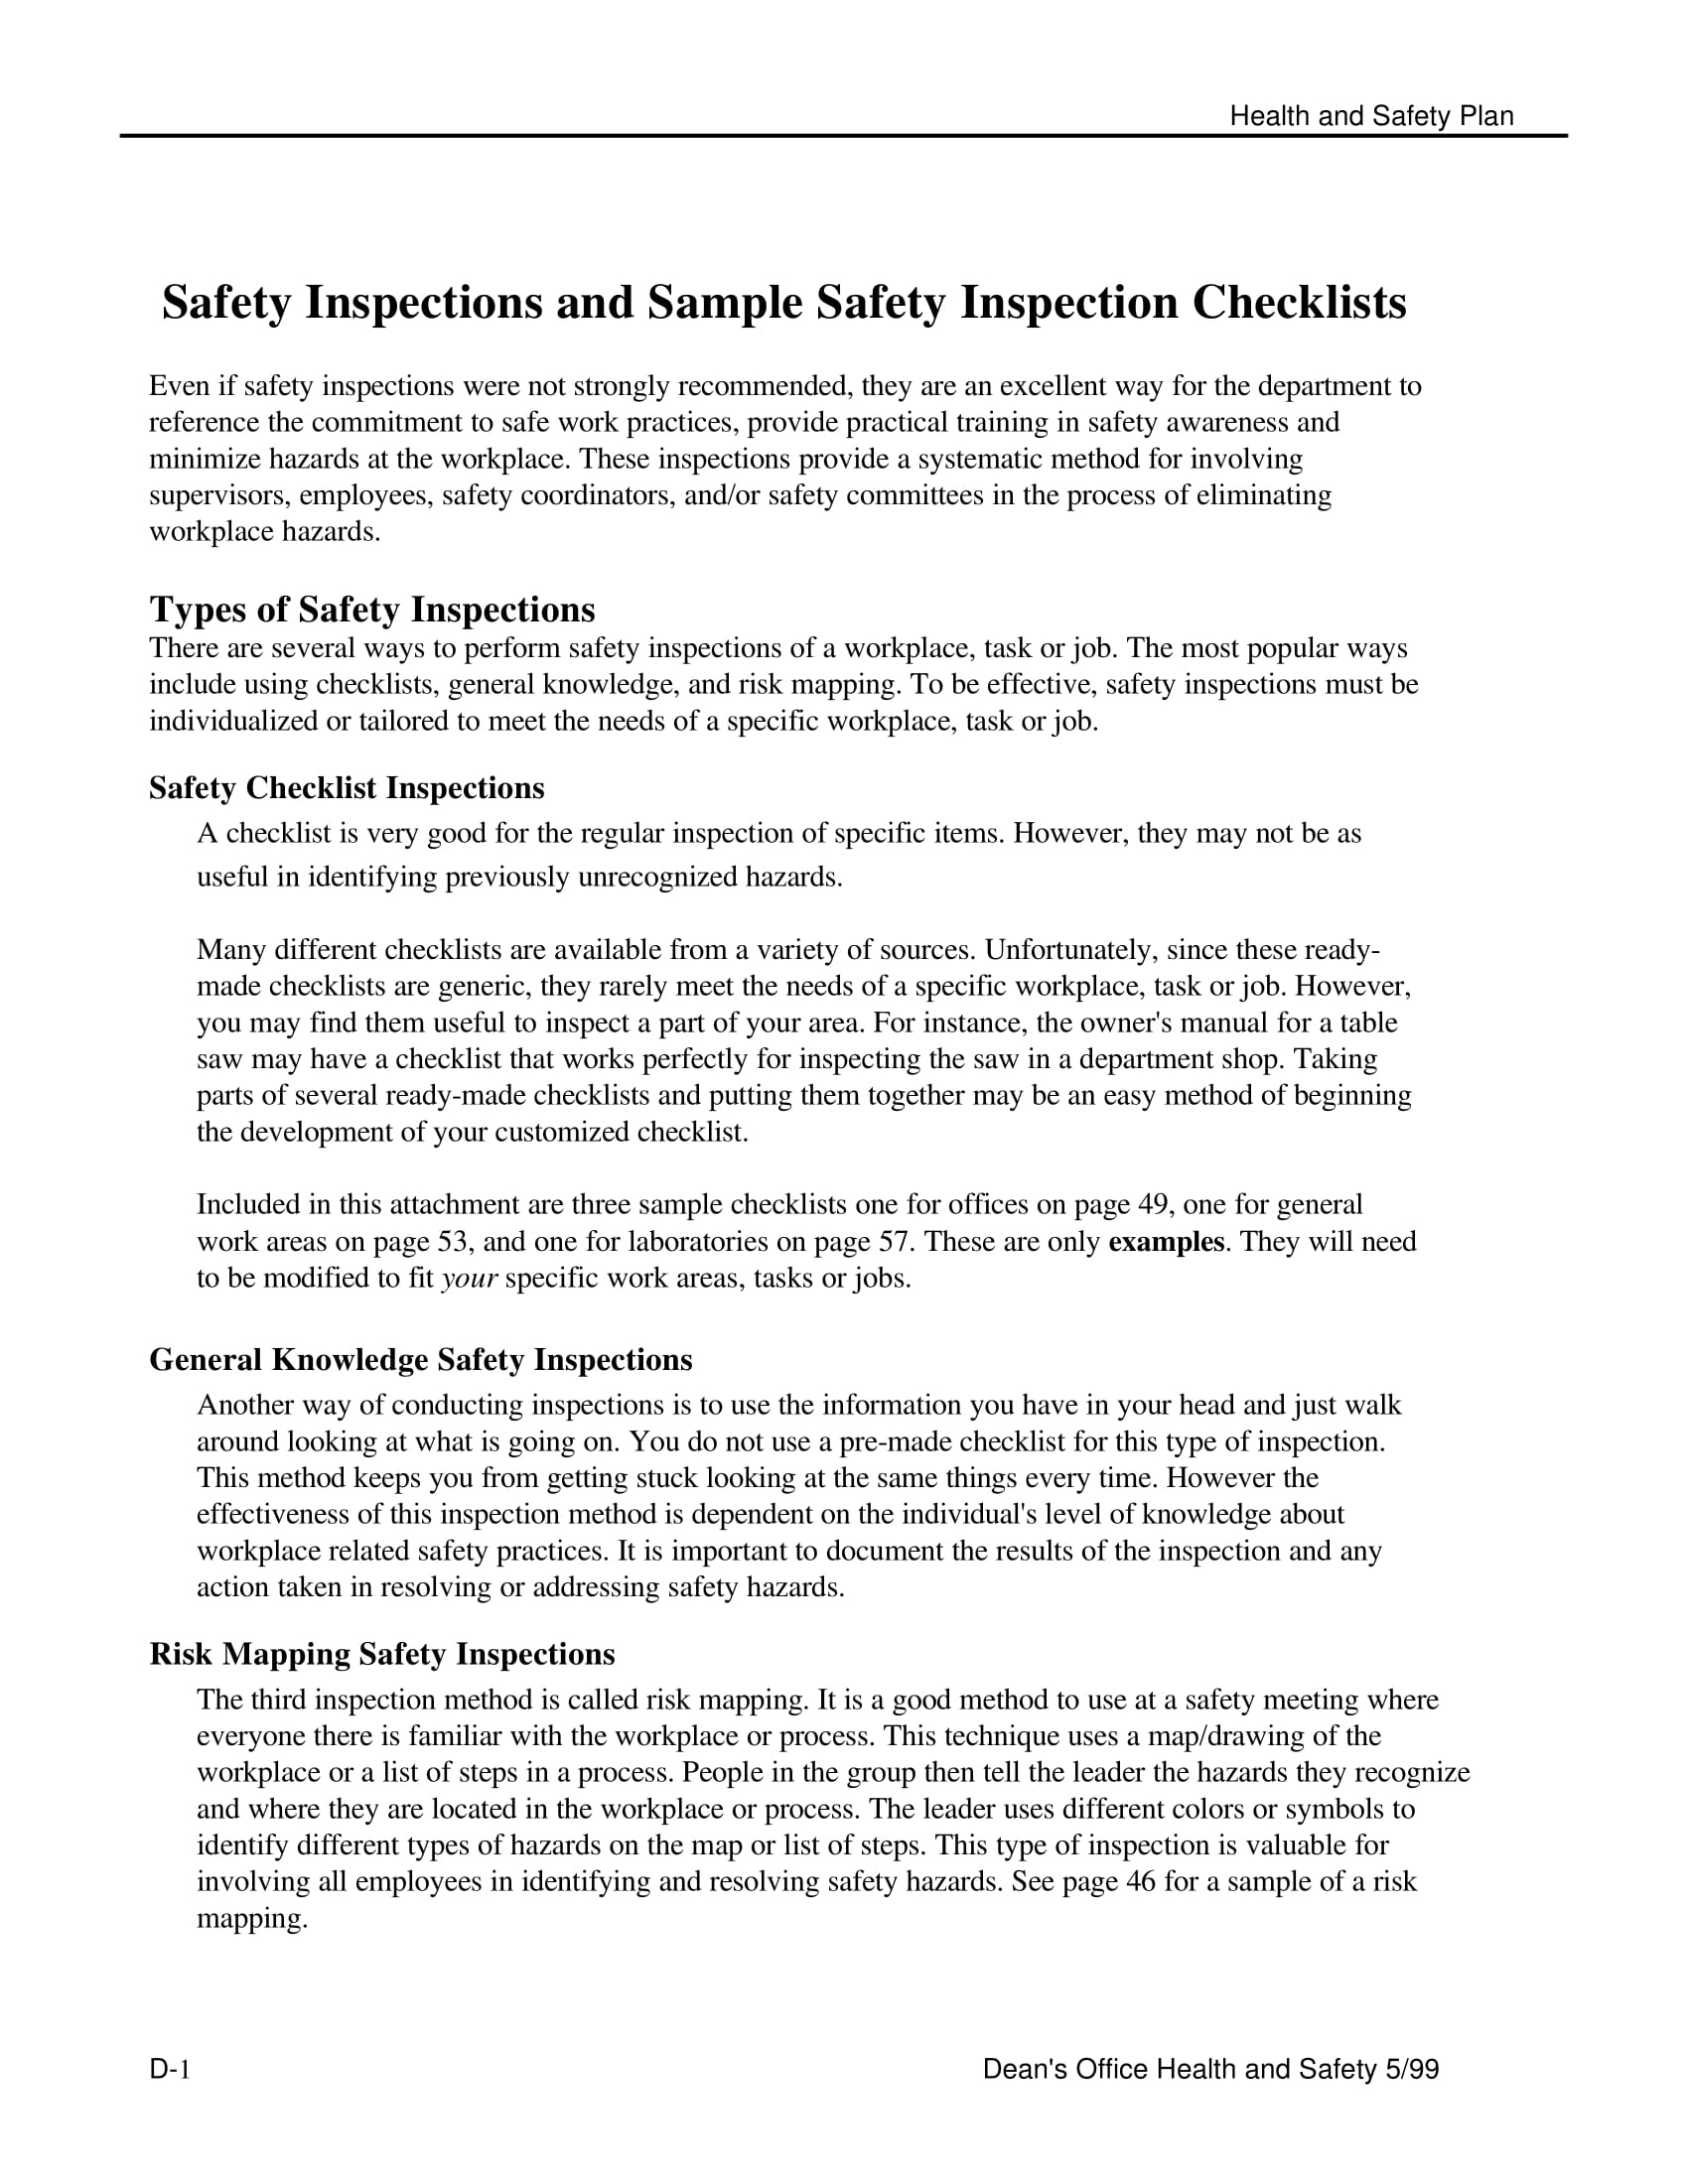 safety inspections and sample safety inspection checklist example